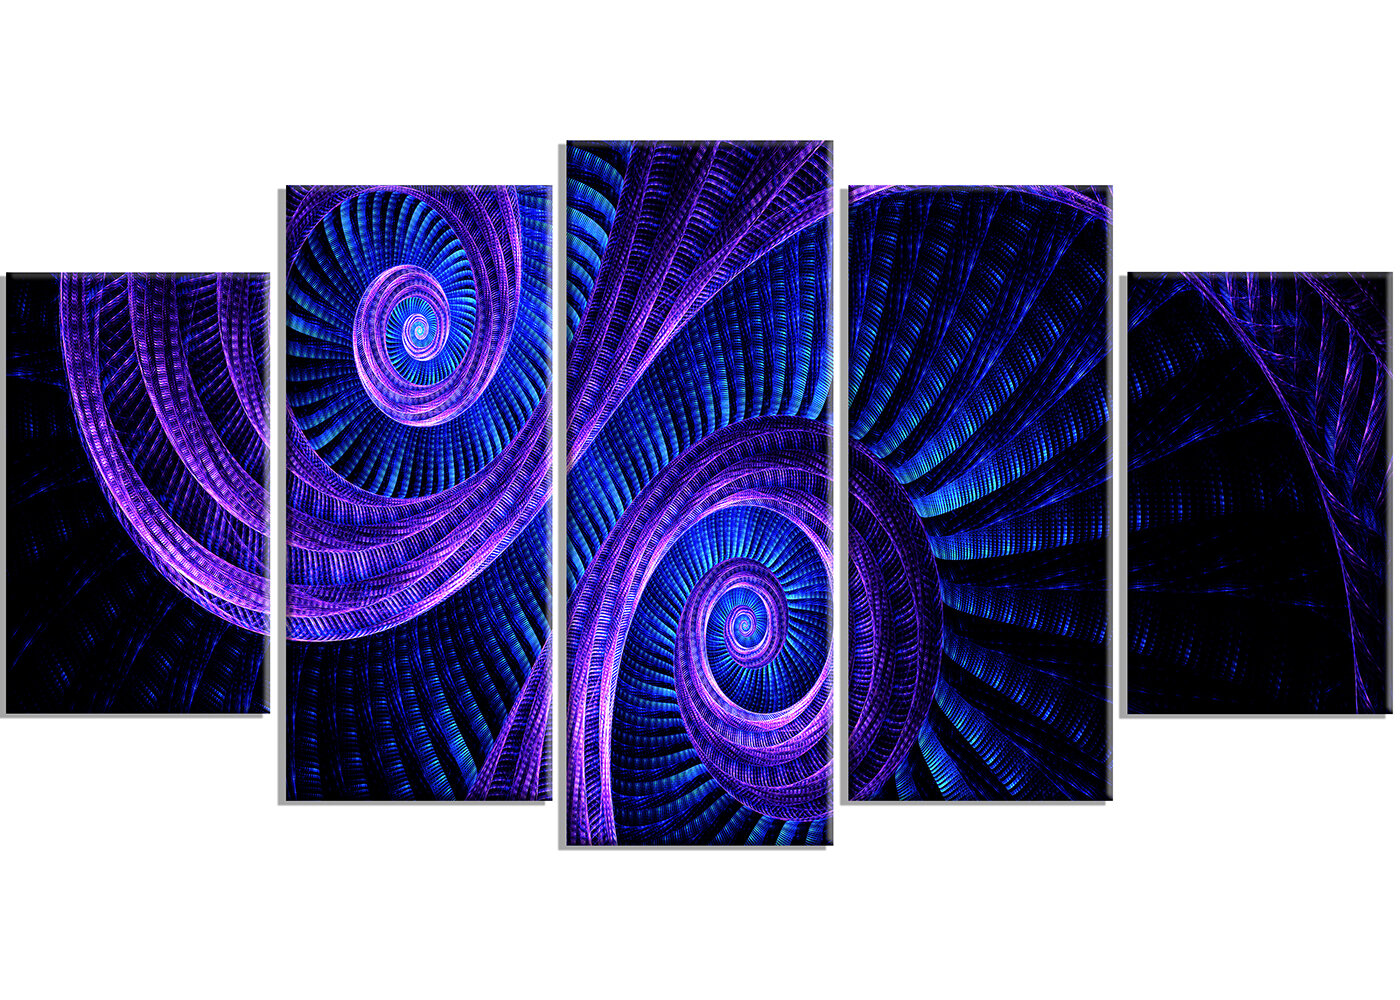 Designart Royal Purple Blue Dream 5 Piece Graphic Art On Wrapped Canvas Set Wayfair